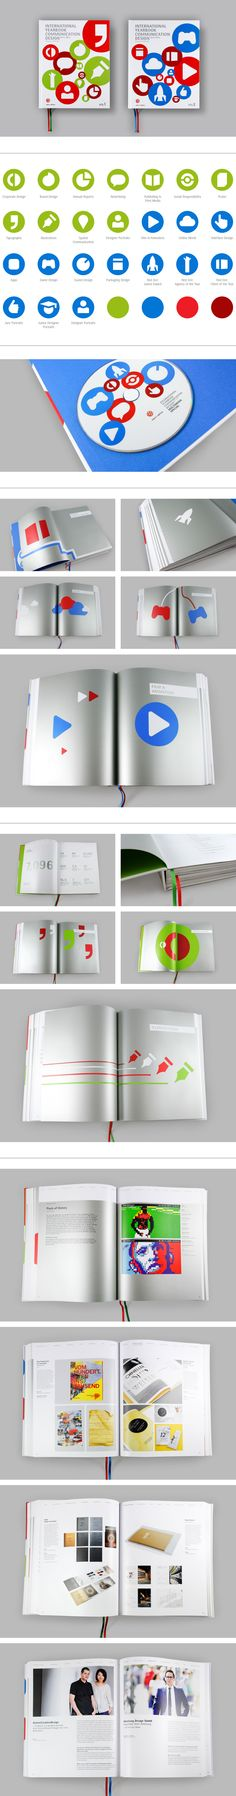 Red Dot Communication Design Yearbook 2014/2015